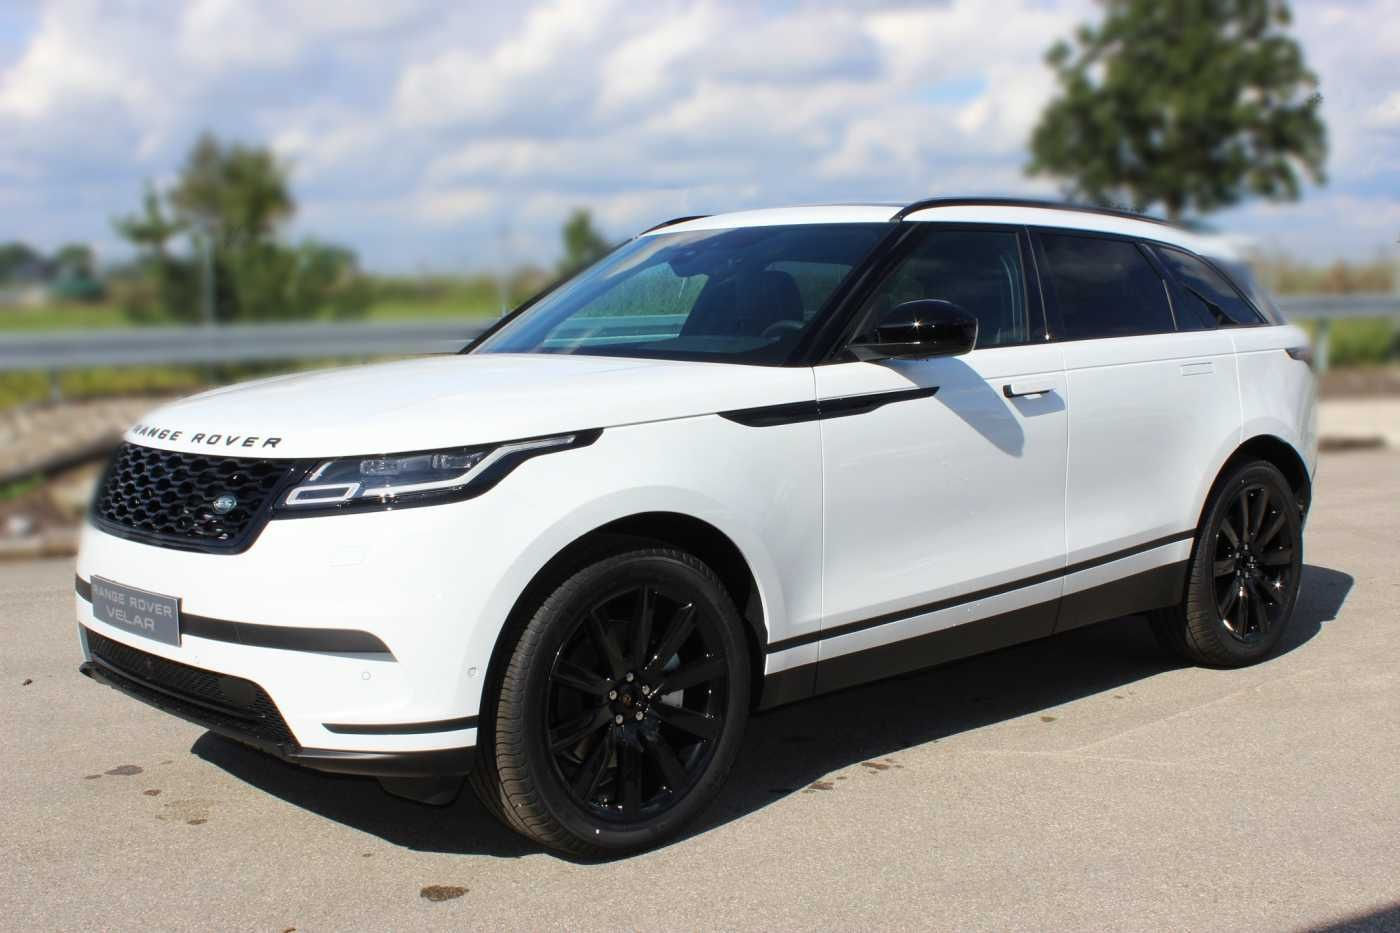 2019 Range Rover Check More At Http Www Autocar1 Club 2019 07 02 2019 Range Rover Land Rover Defender Range Rover Land Rover